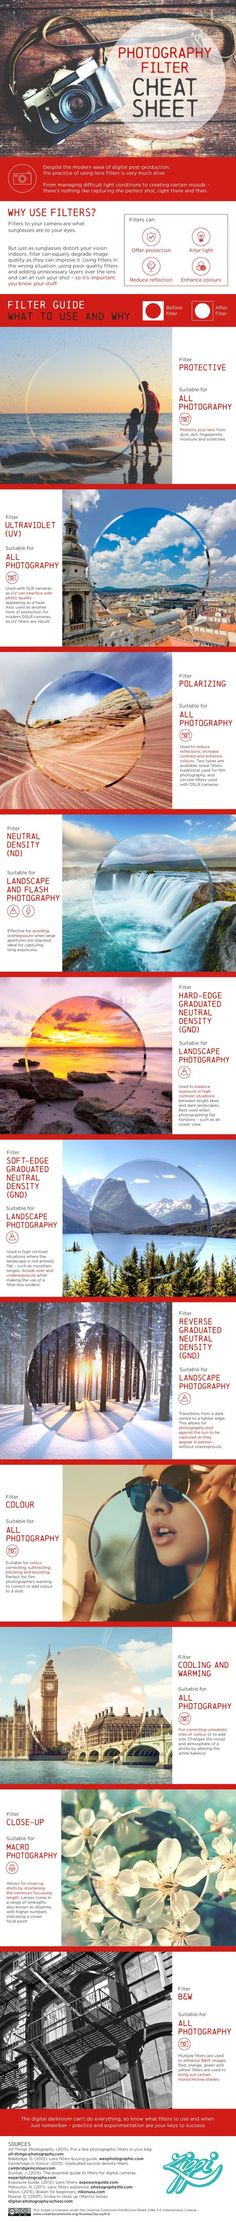 Save this photography filter guide to help increase the quality of your images.